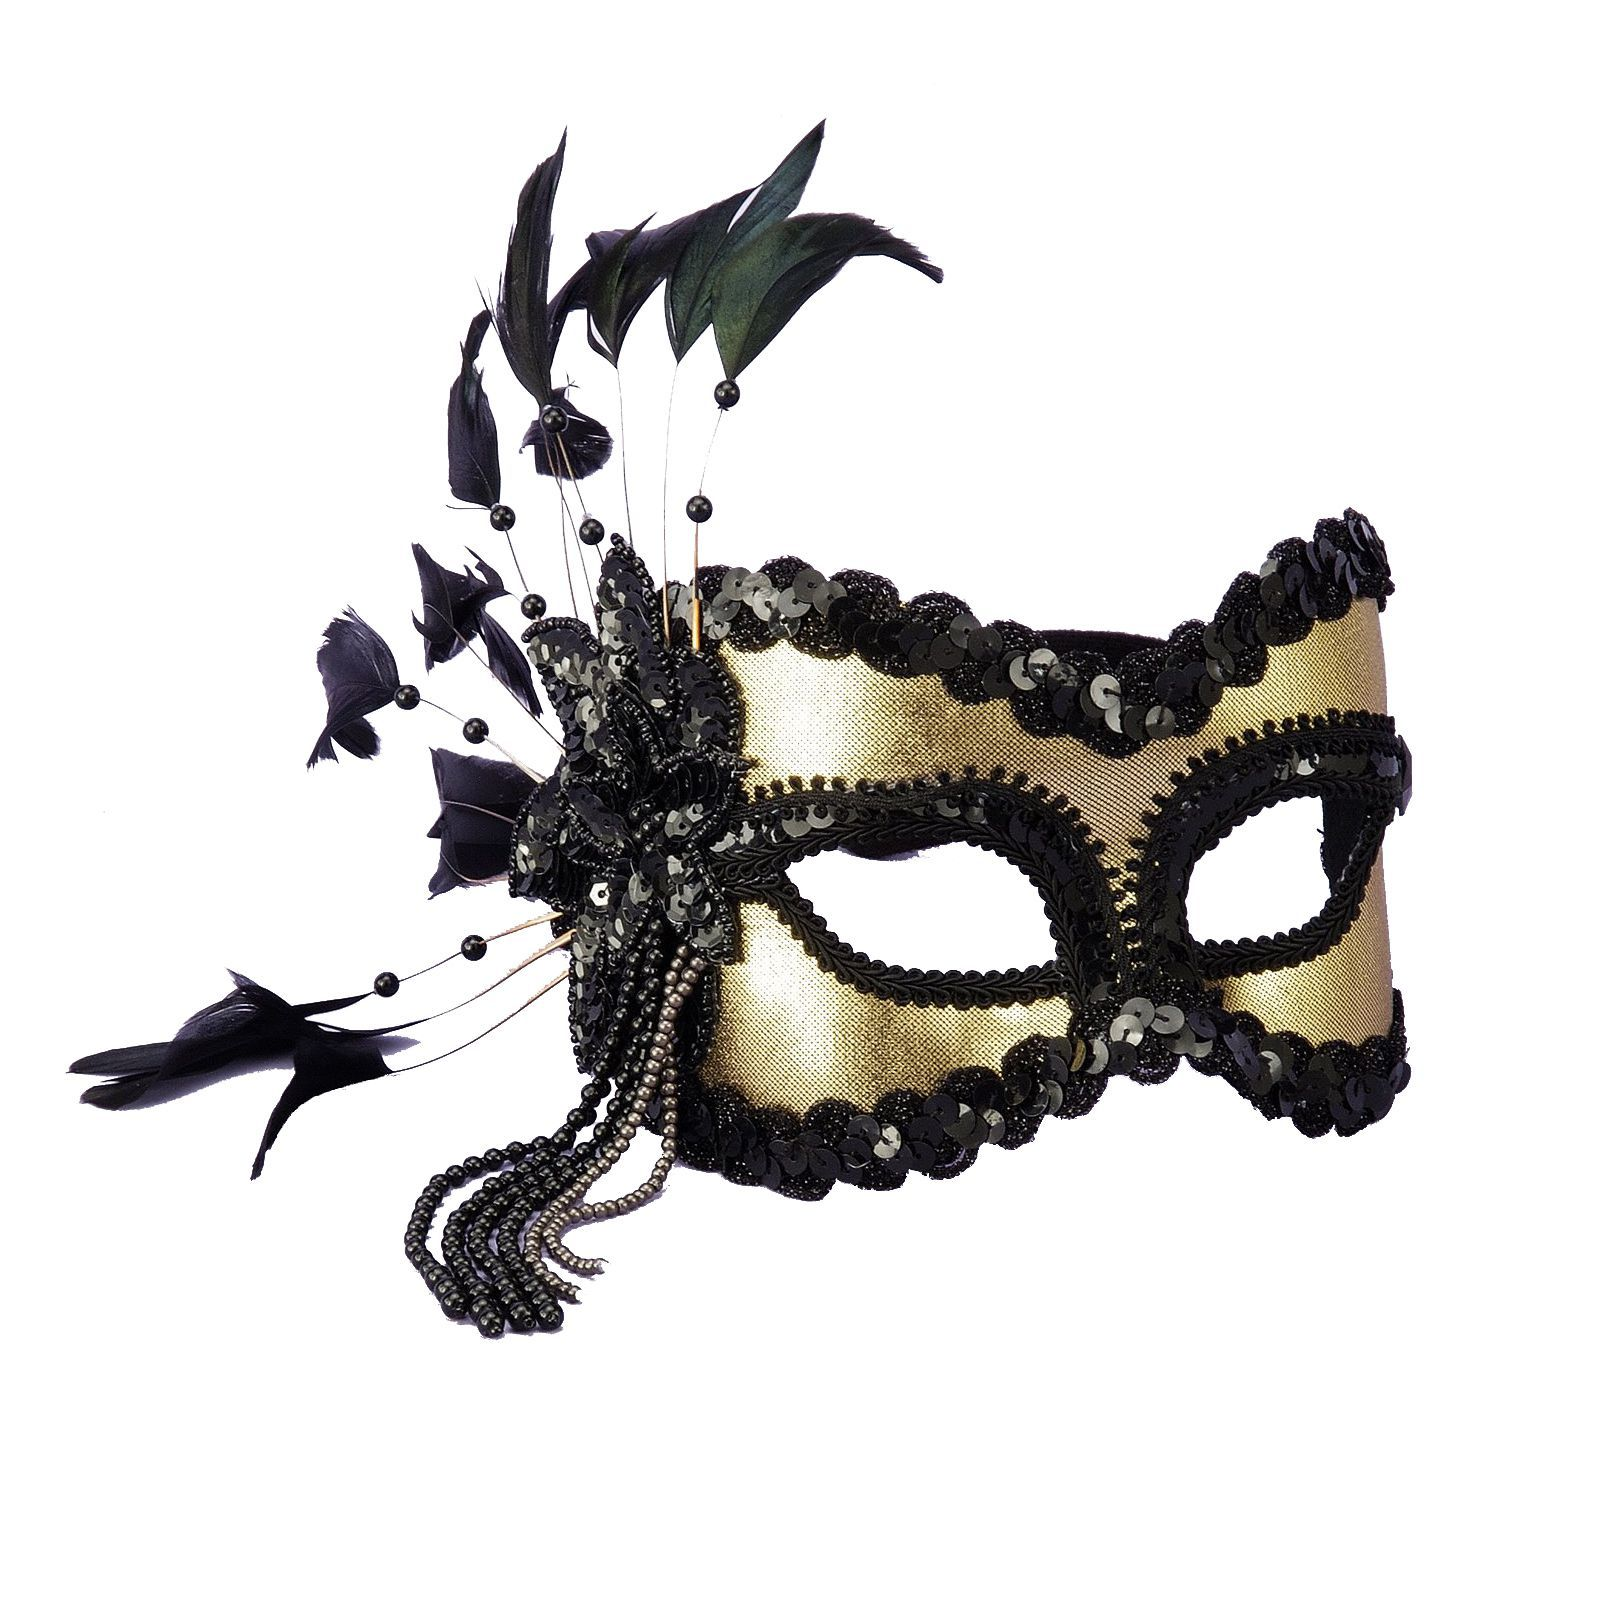 how to accessorize your mardi gras attire mardi gras be sure to add some of these traditional accessory items to your party attire when celebrating carnival season